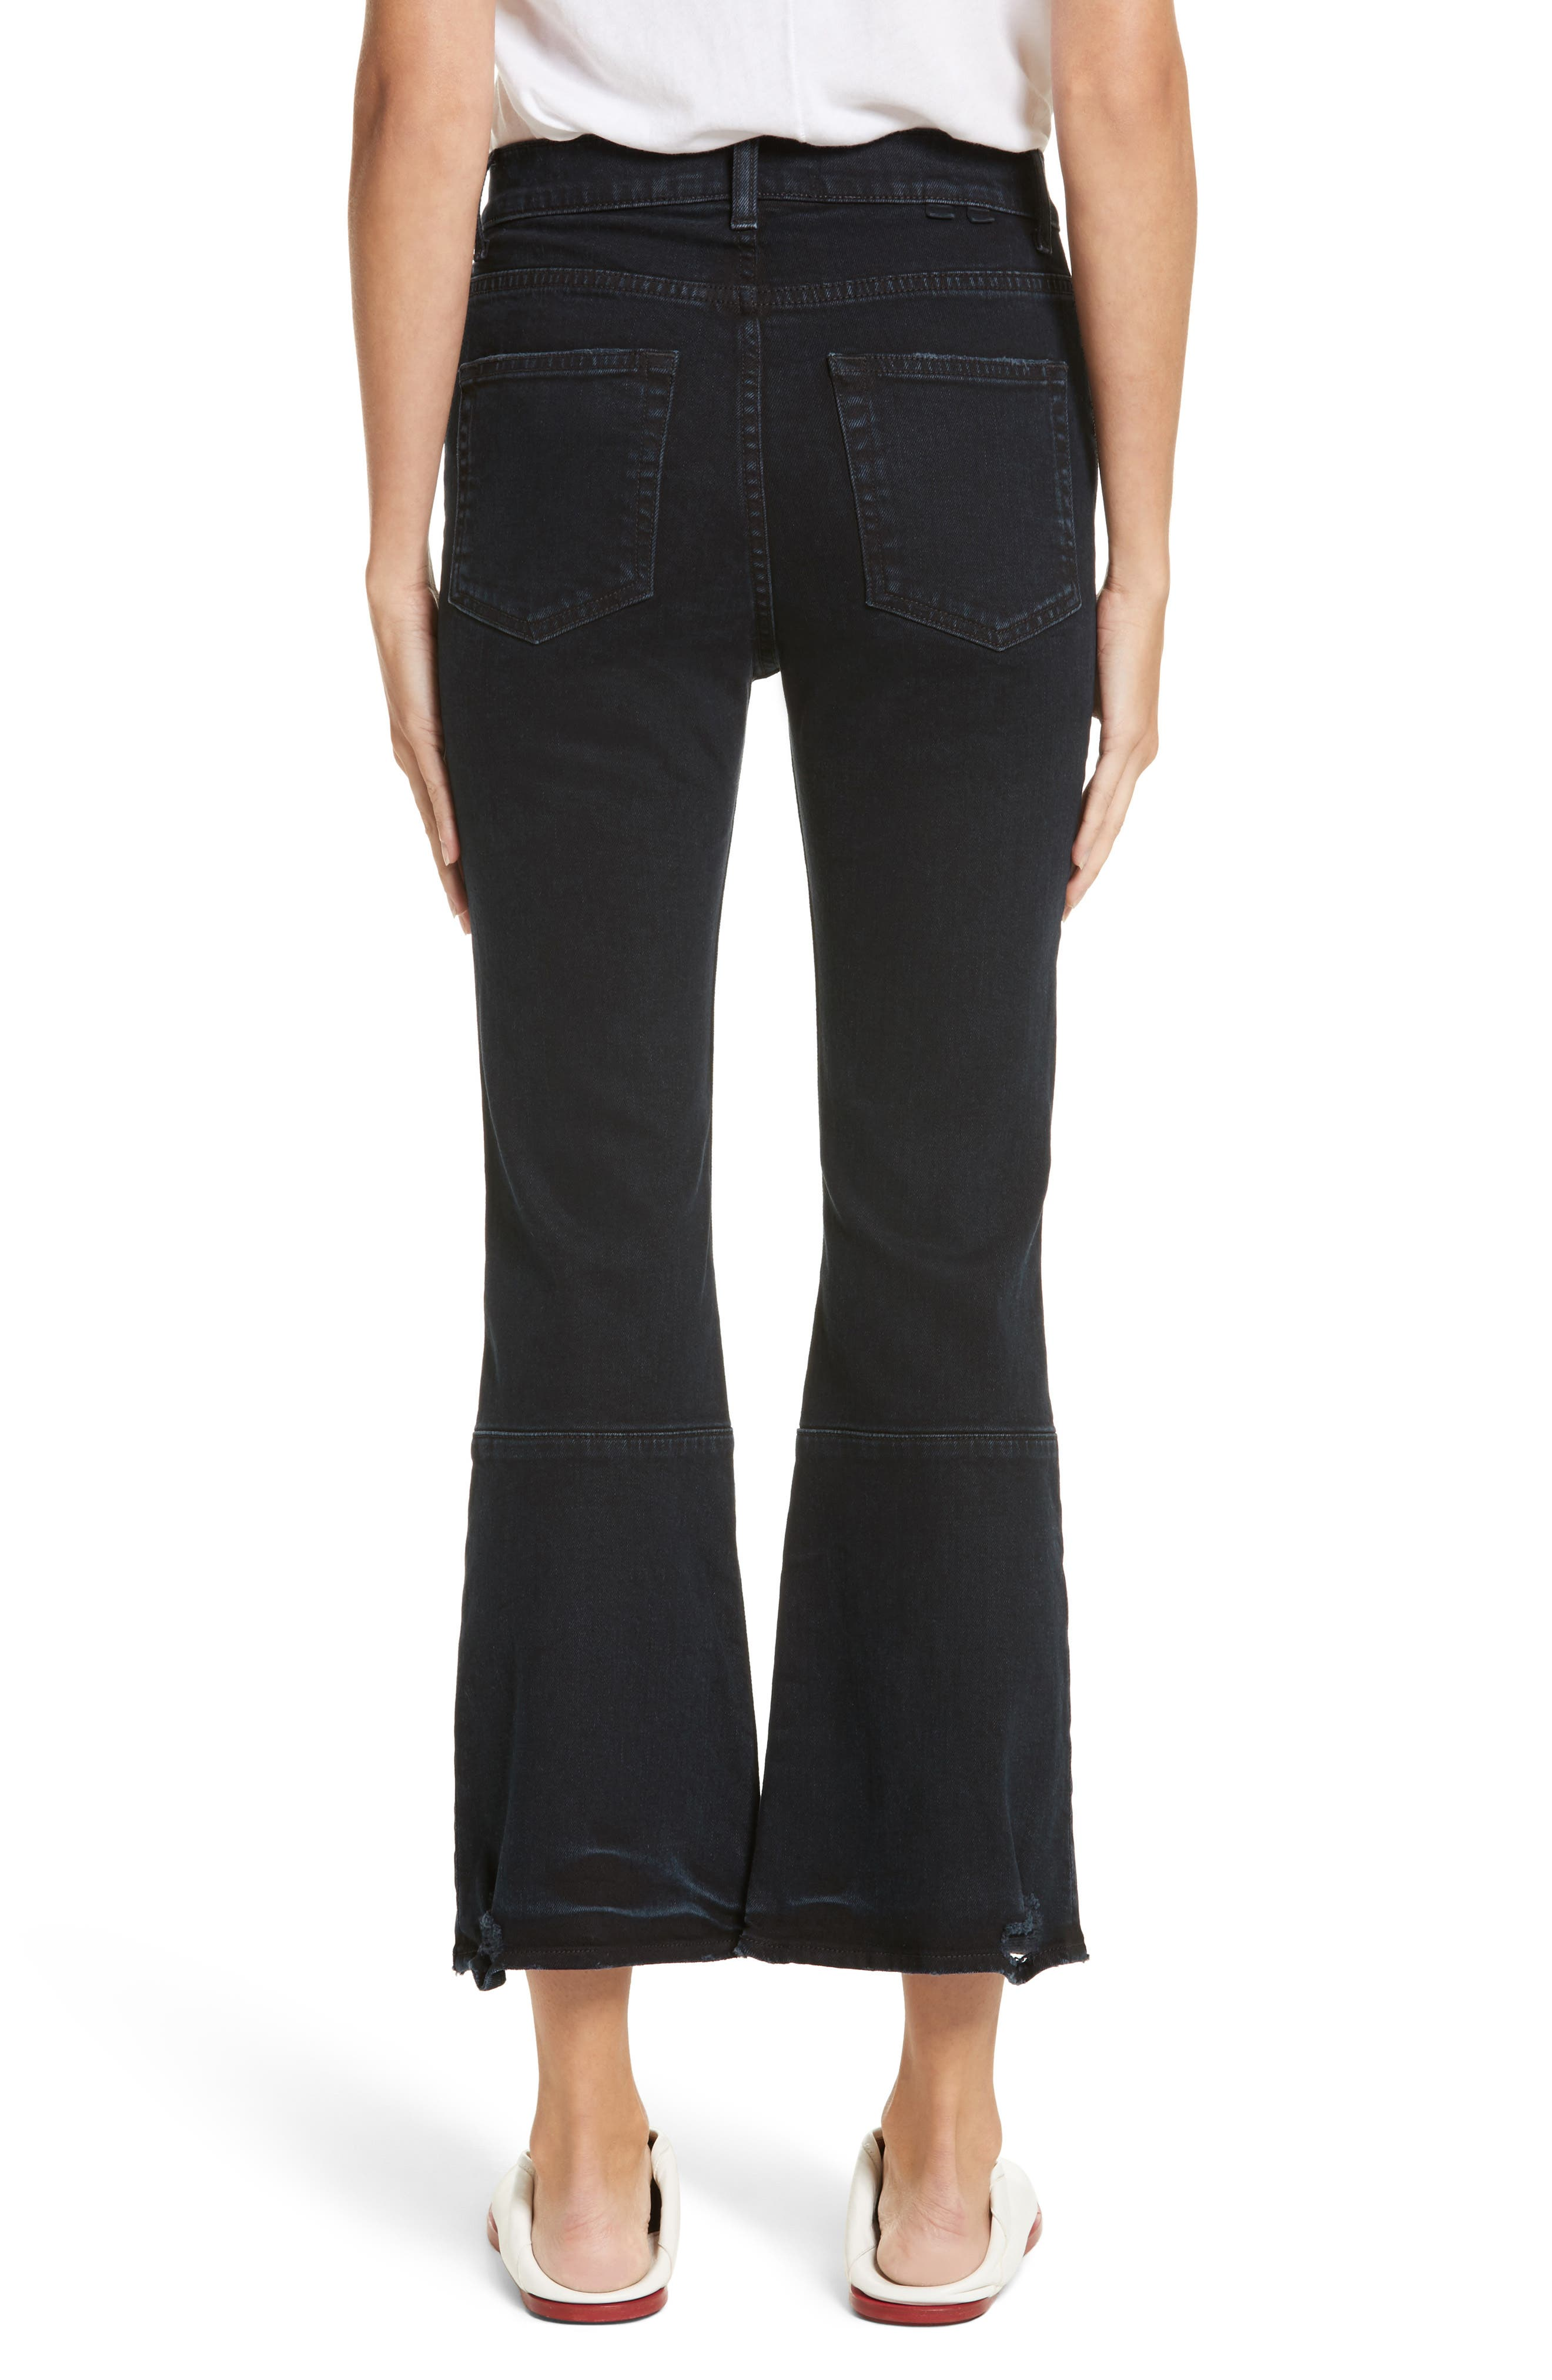 PSWL Crop Kick Flare Jeans,                             Alternate thumbnail 2, color,                             Stone Washed Black